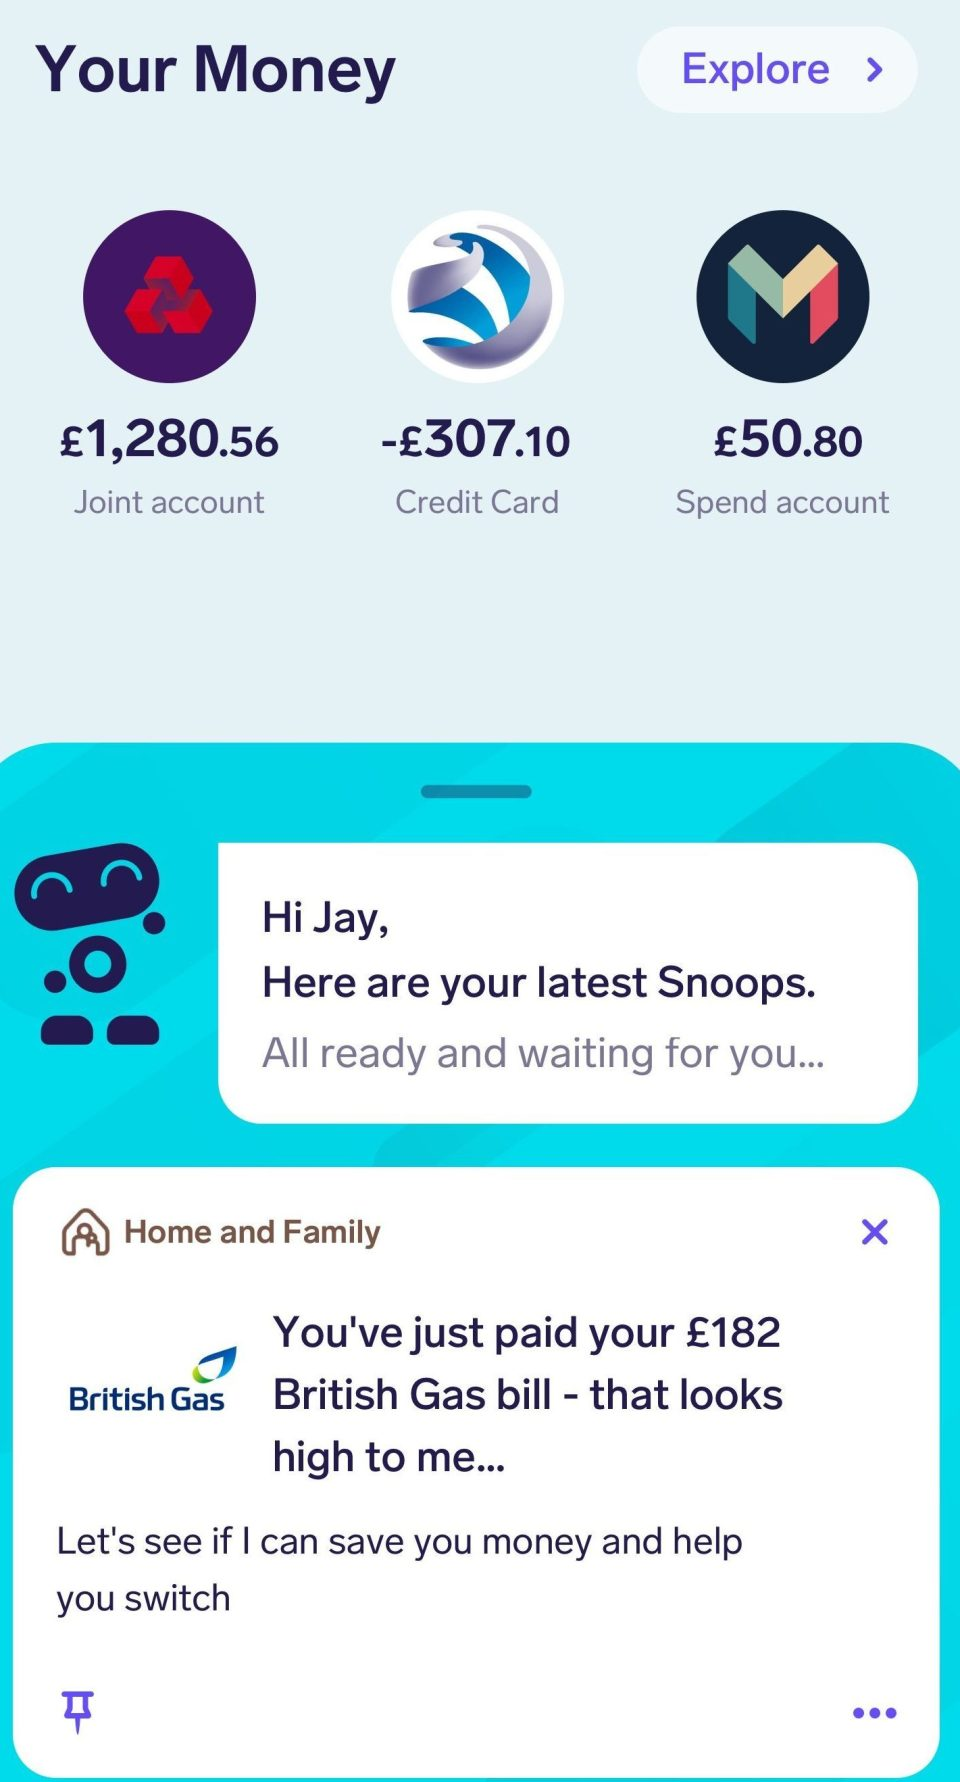 The Snoop app, which is regulated by the Financial Conduct Authority, gives you personalised savings ideas based on your spending